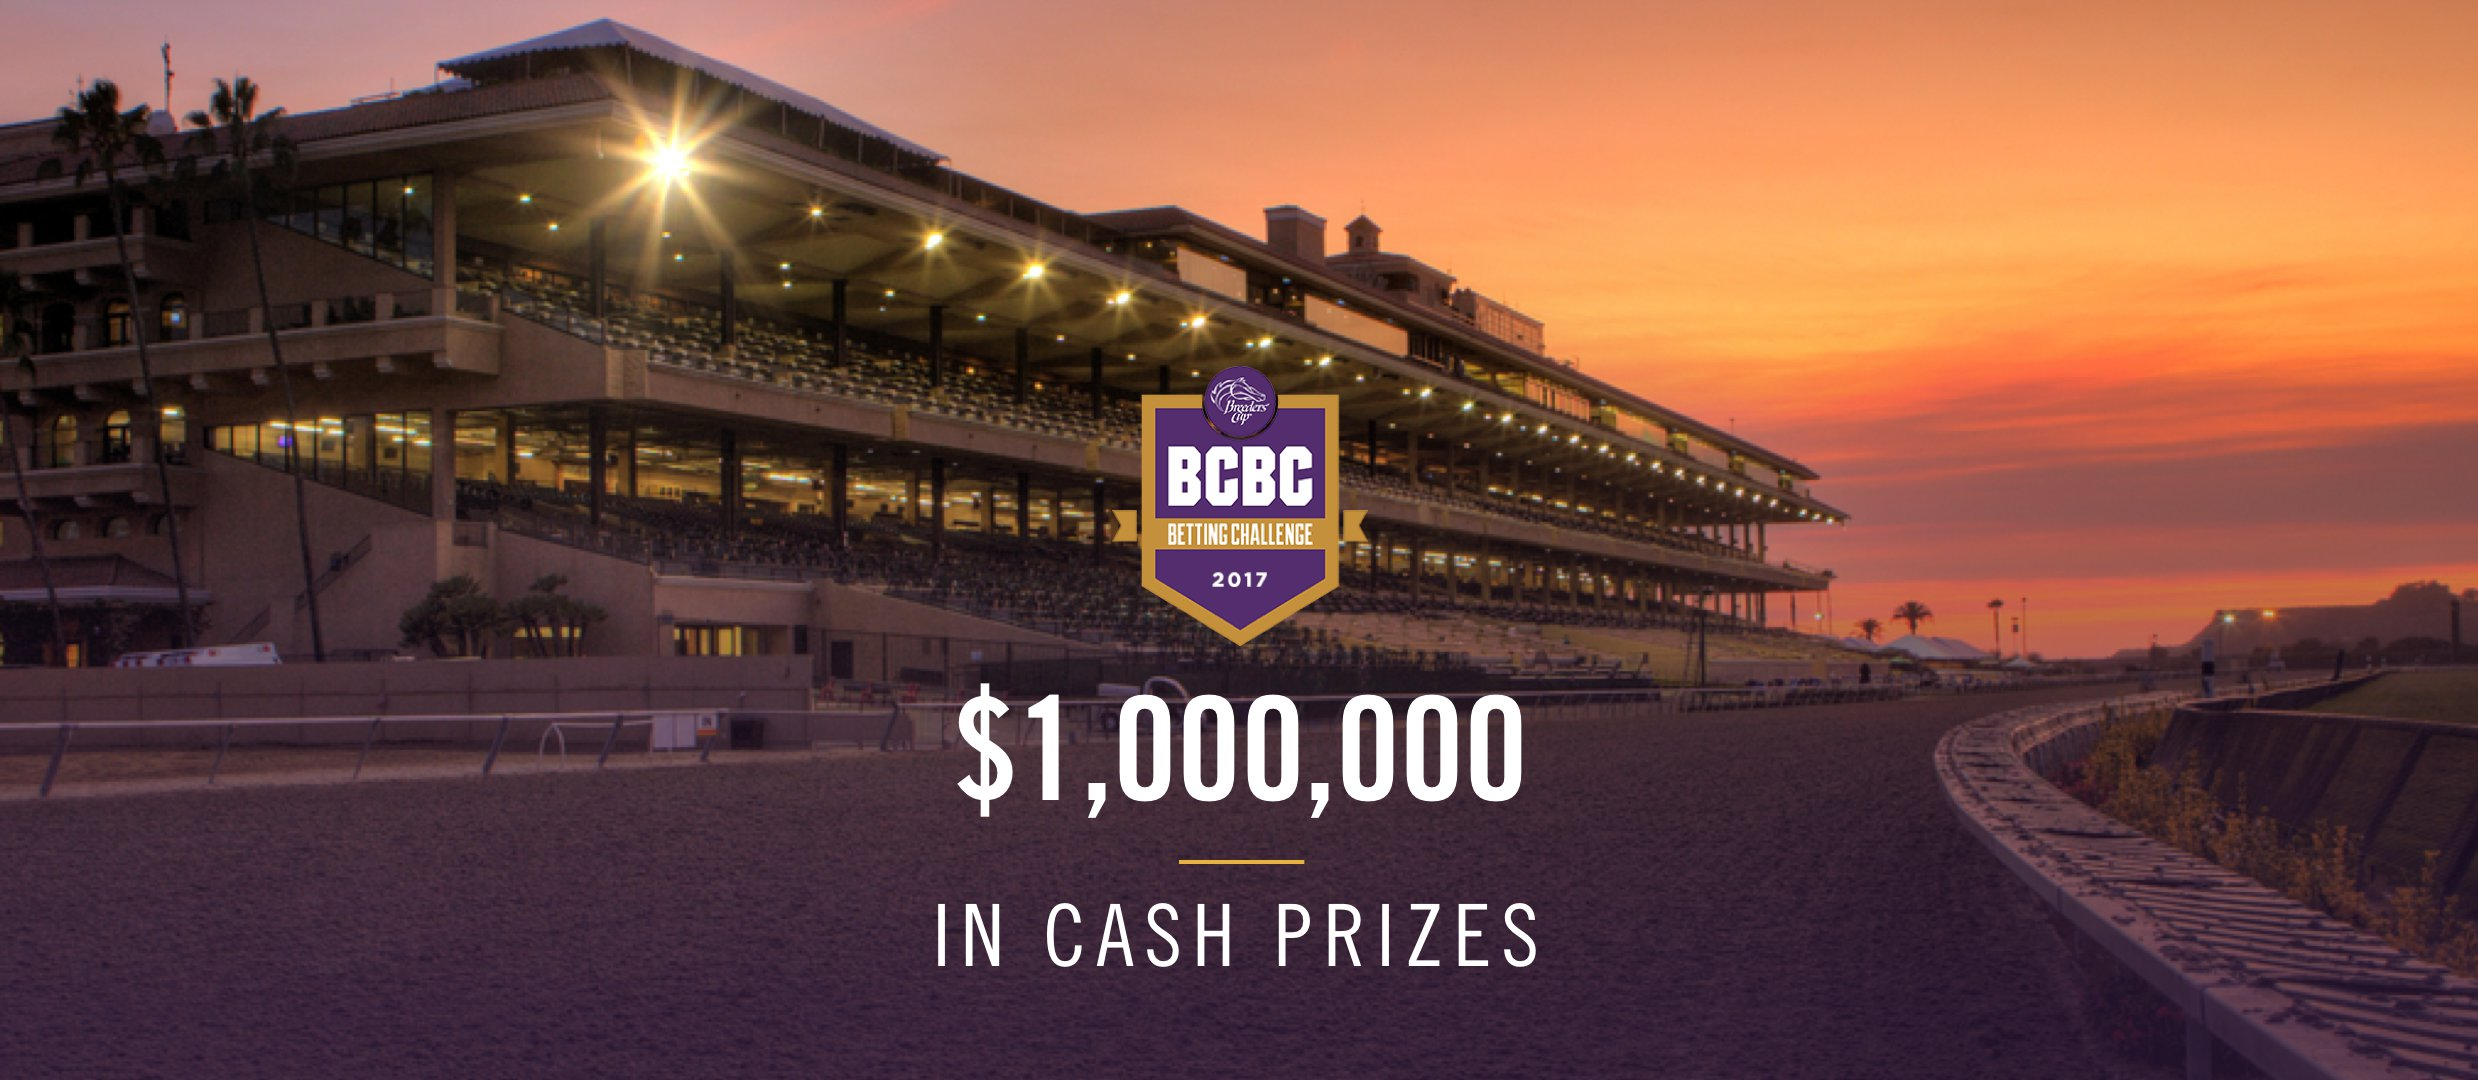 Breeders Cup Betting Challenge